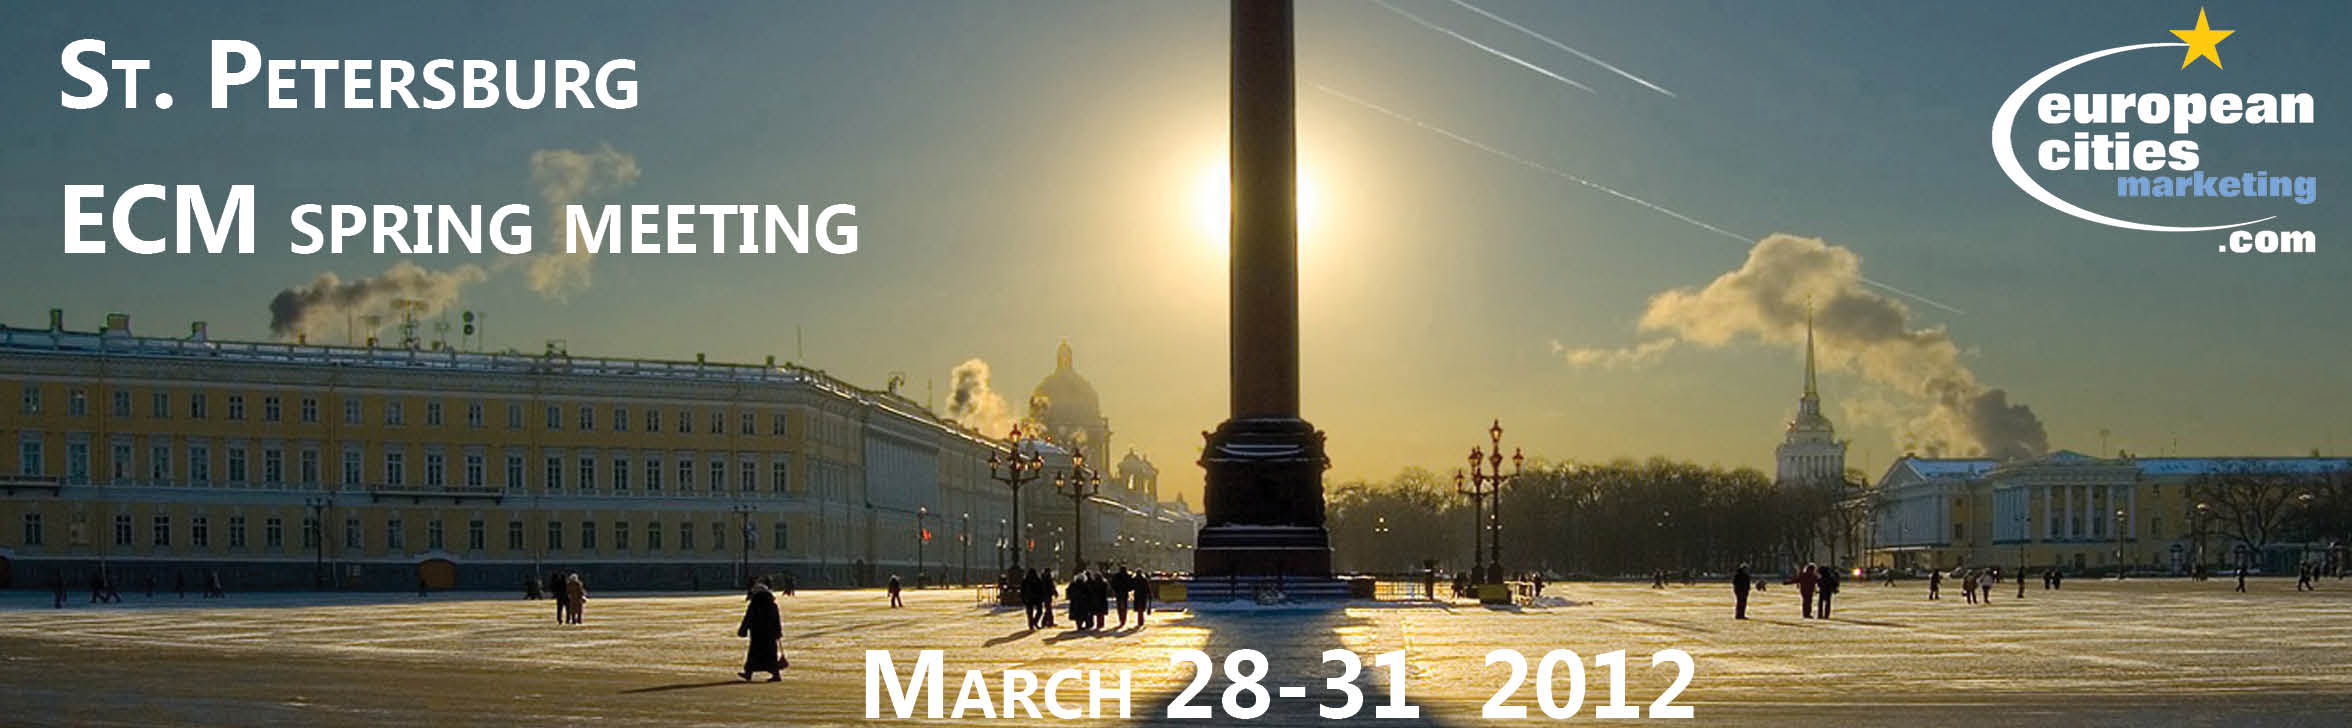 ECM Spring Meeting in St Petersburg